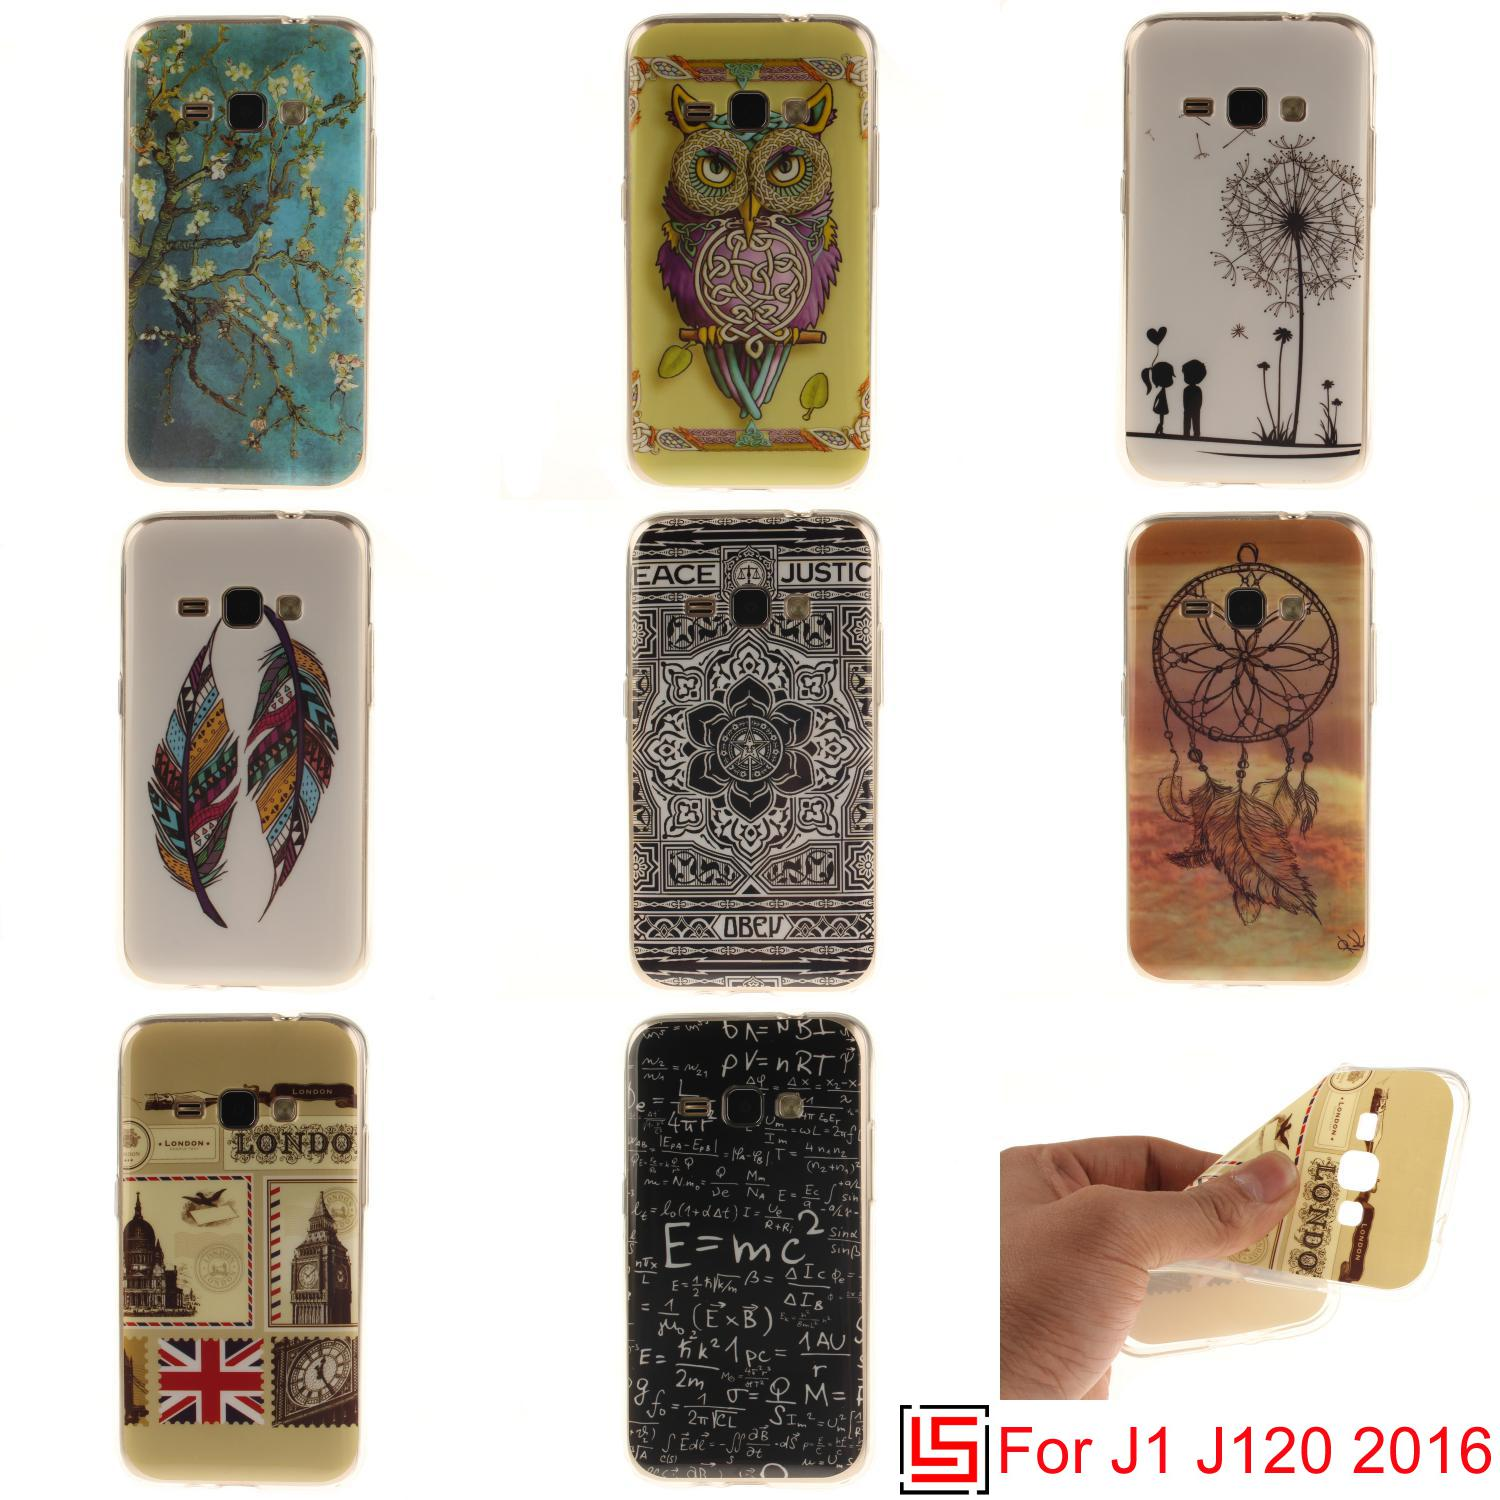 Cheap Beautiful New Ultra Thin TPU Silicone Soft Phone Mobile Cell Case Cover For Samsung Sumsang Sansung Galaxy J1 2016 J 120